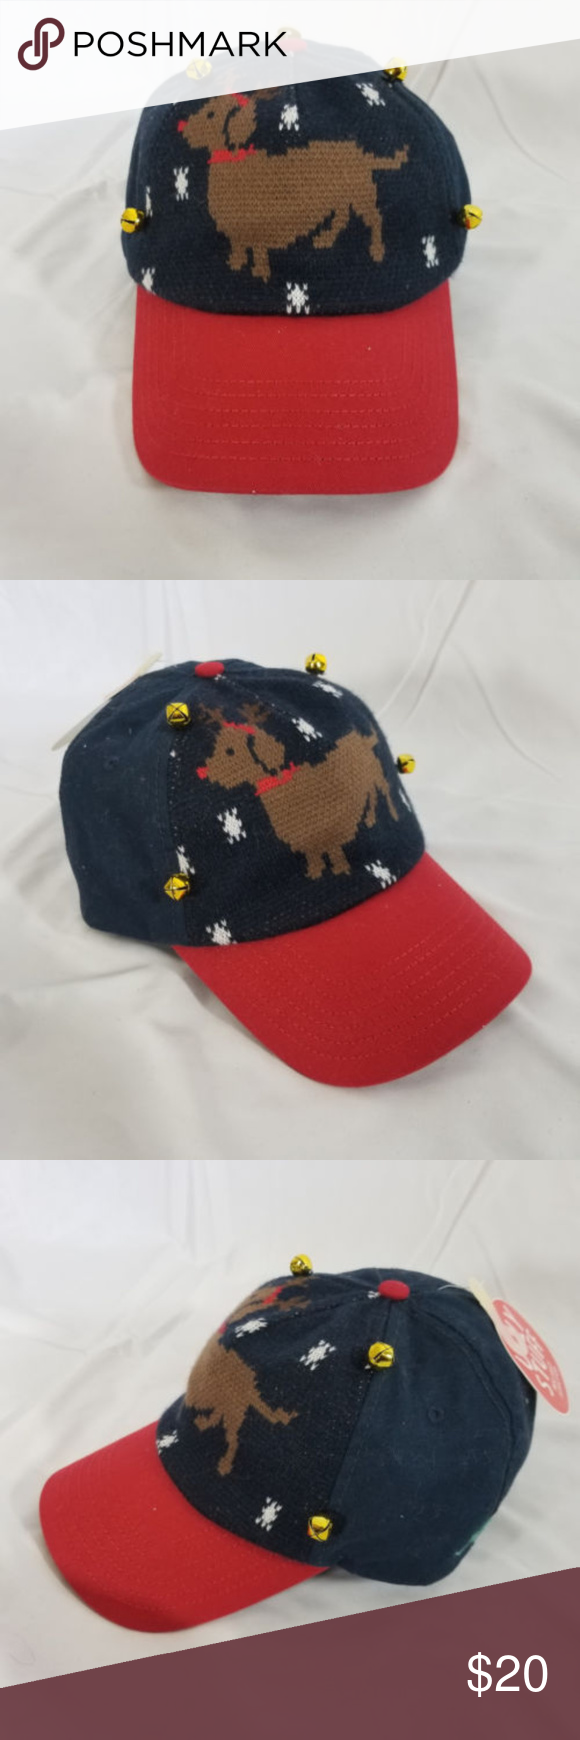 "a75e6d074c3 ... Baseball Hat Christmas New without tags ""Tags Removed To Prevent Store  Returns"" Ugly Stuff Holiday Supply Co. Dachshund Through The Snow W  Jingle  Bells ..."